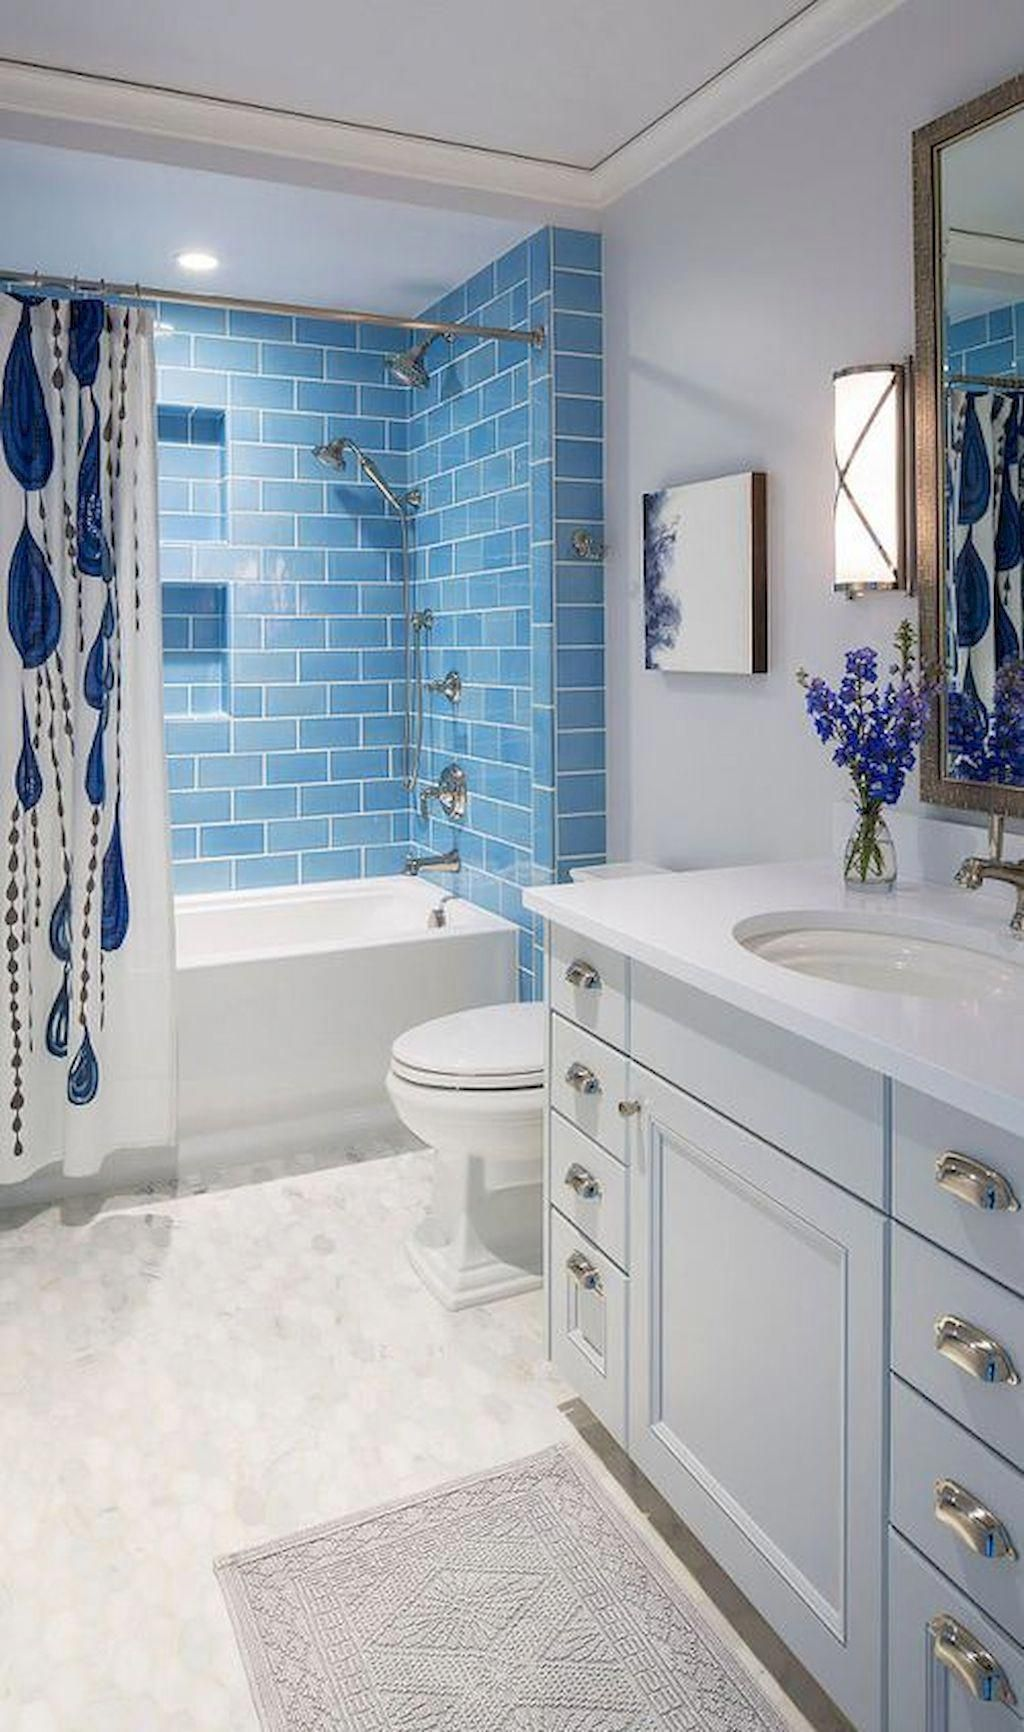 Perhaps The Most Crucial Thing To Keep In Mind When Aiming To Purchase A New Shower Stall I Budget Bathroom Remodel Small Remodel Modern Small Bathrooms